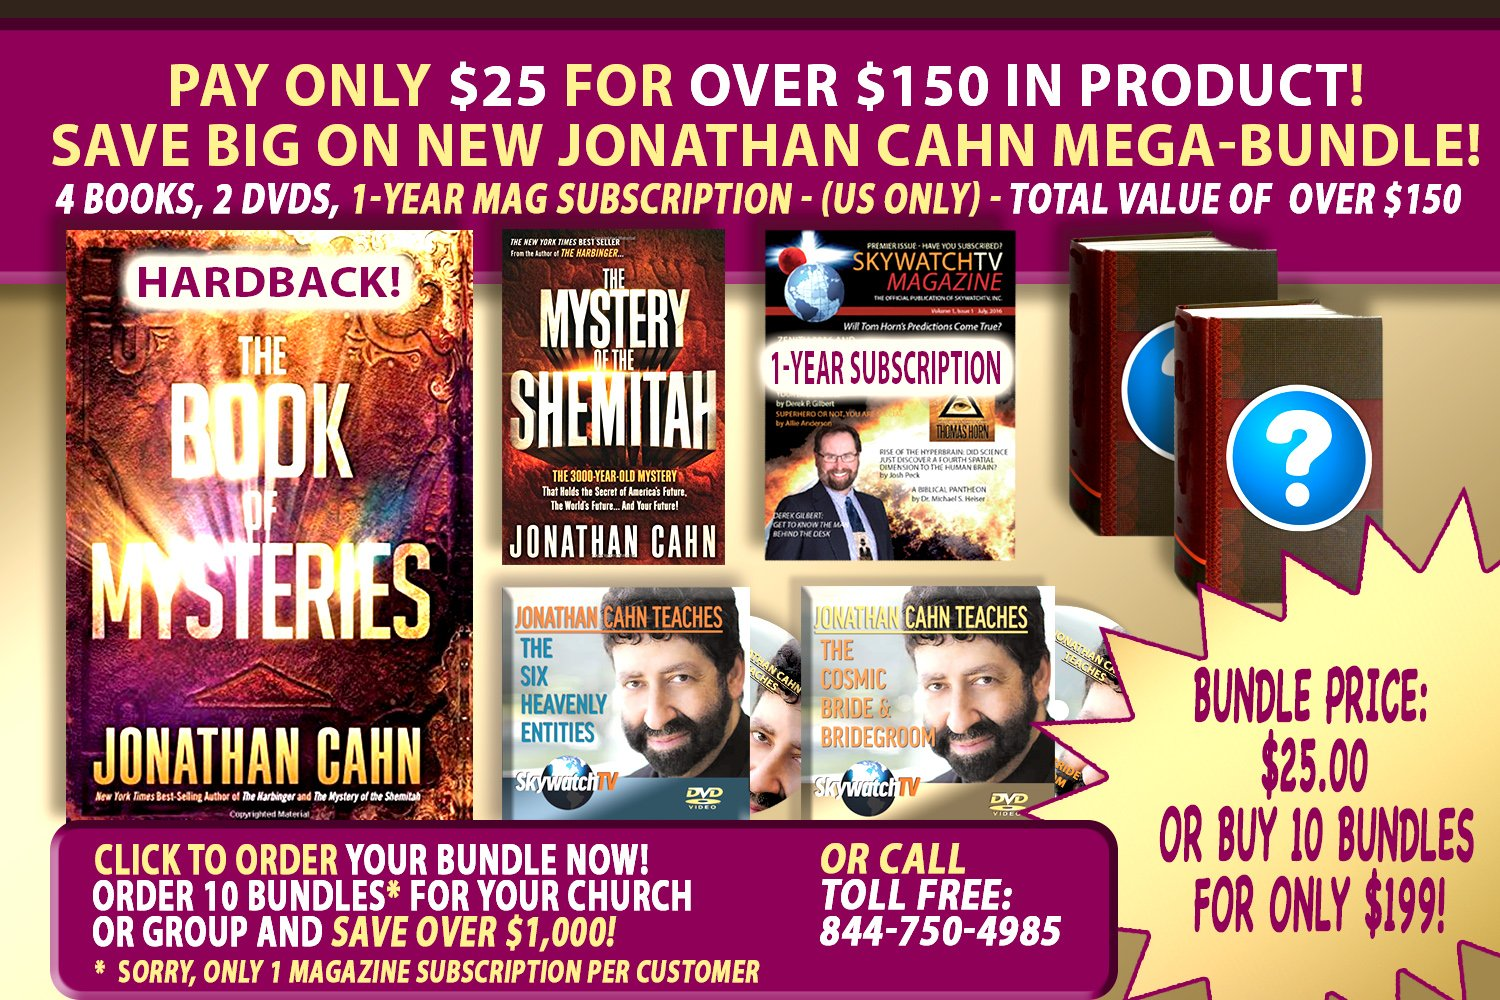 "IT'S THE BIGGEST GIVEAWAY ANYWHERE WITH RABBI JONATHAN CAHN'S NEW ""THE BOOK OF MYSTERIES""!"